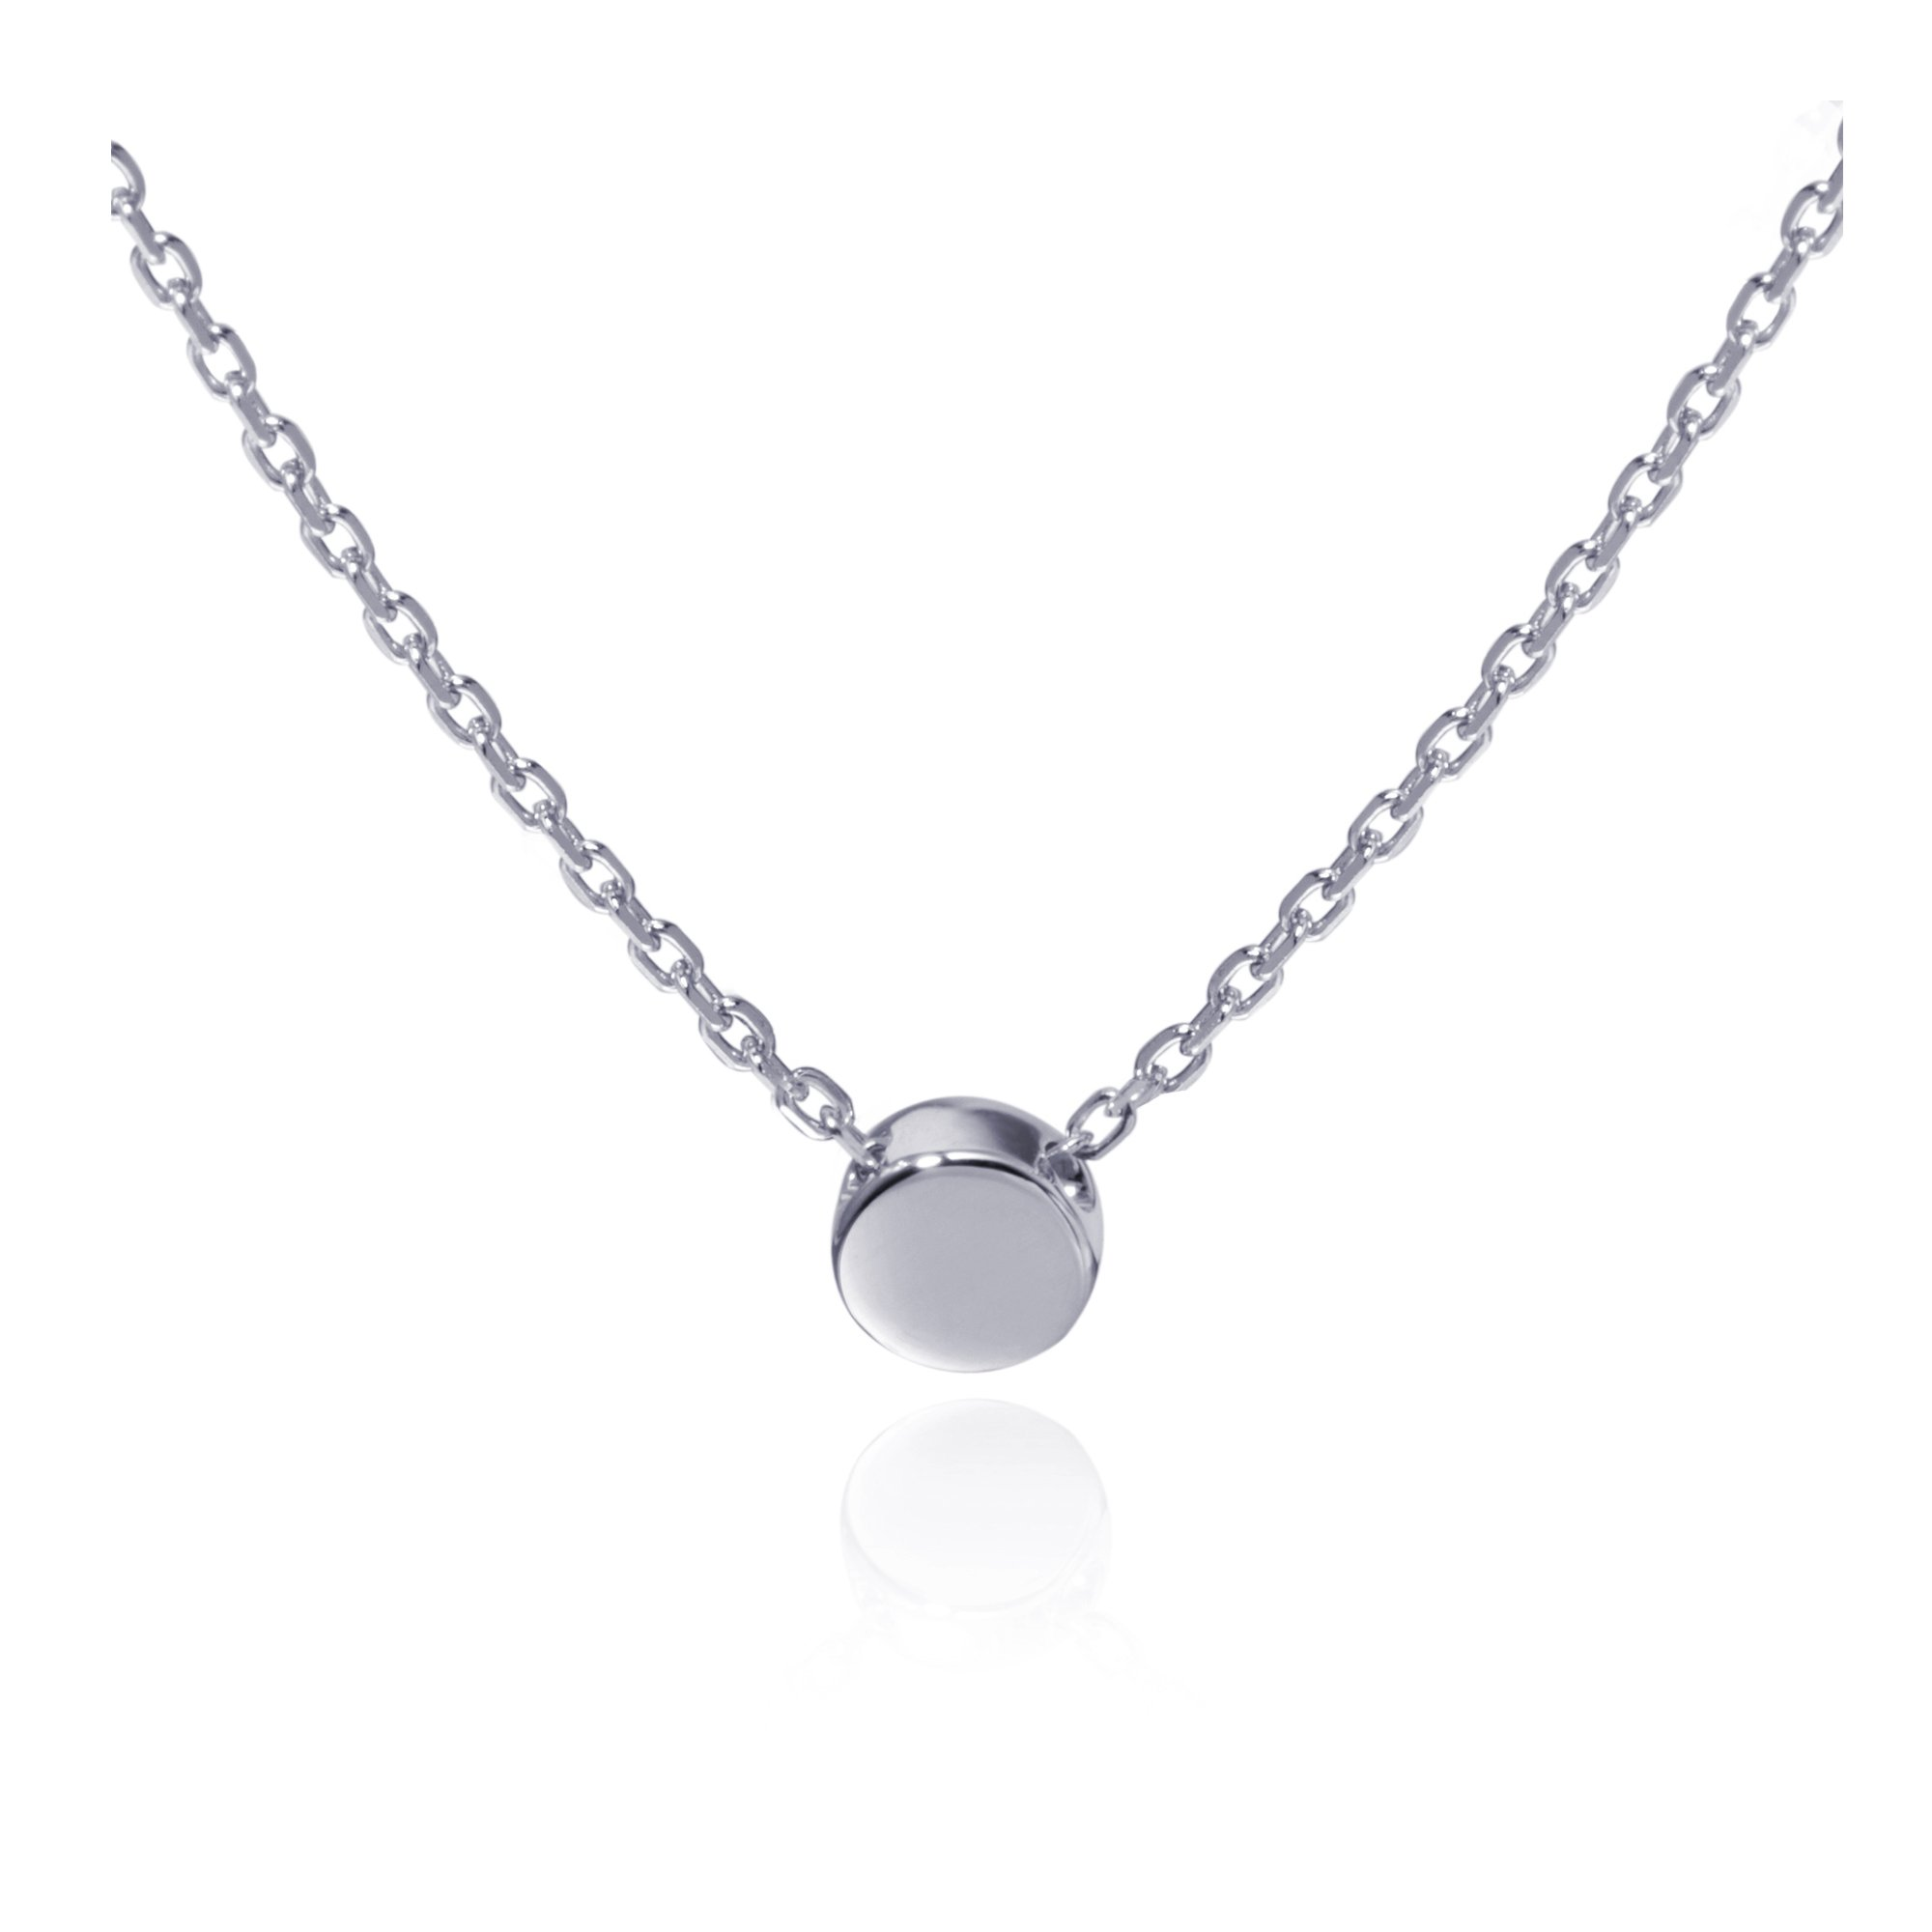 S.Leaf Minimalism Tiny Circle Necklace Sterling Silver Round Pendant Circle Necklace Collar Necklace (Silver)